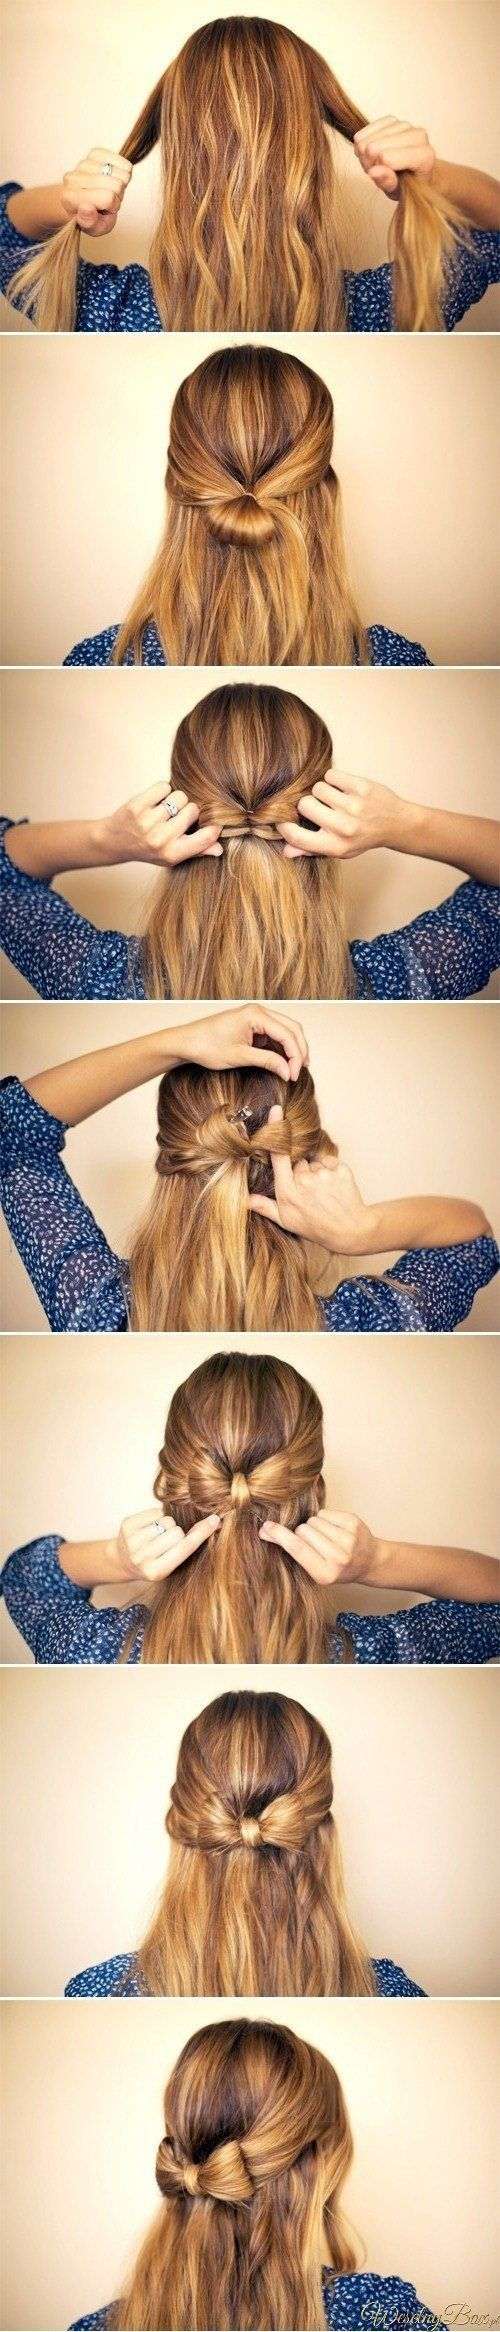 15 Stylish Half up Half down Tutorials - Pretty Designs